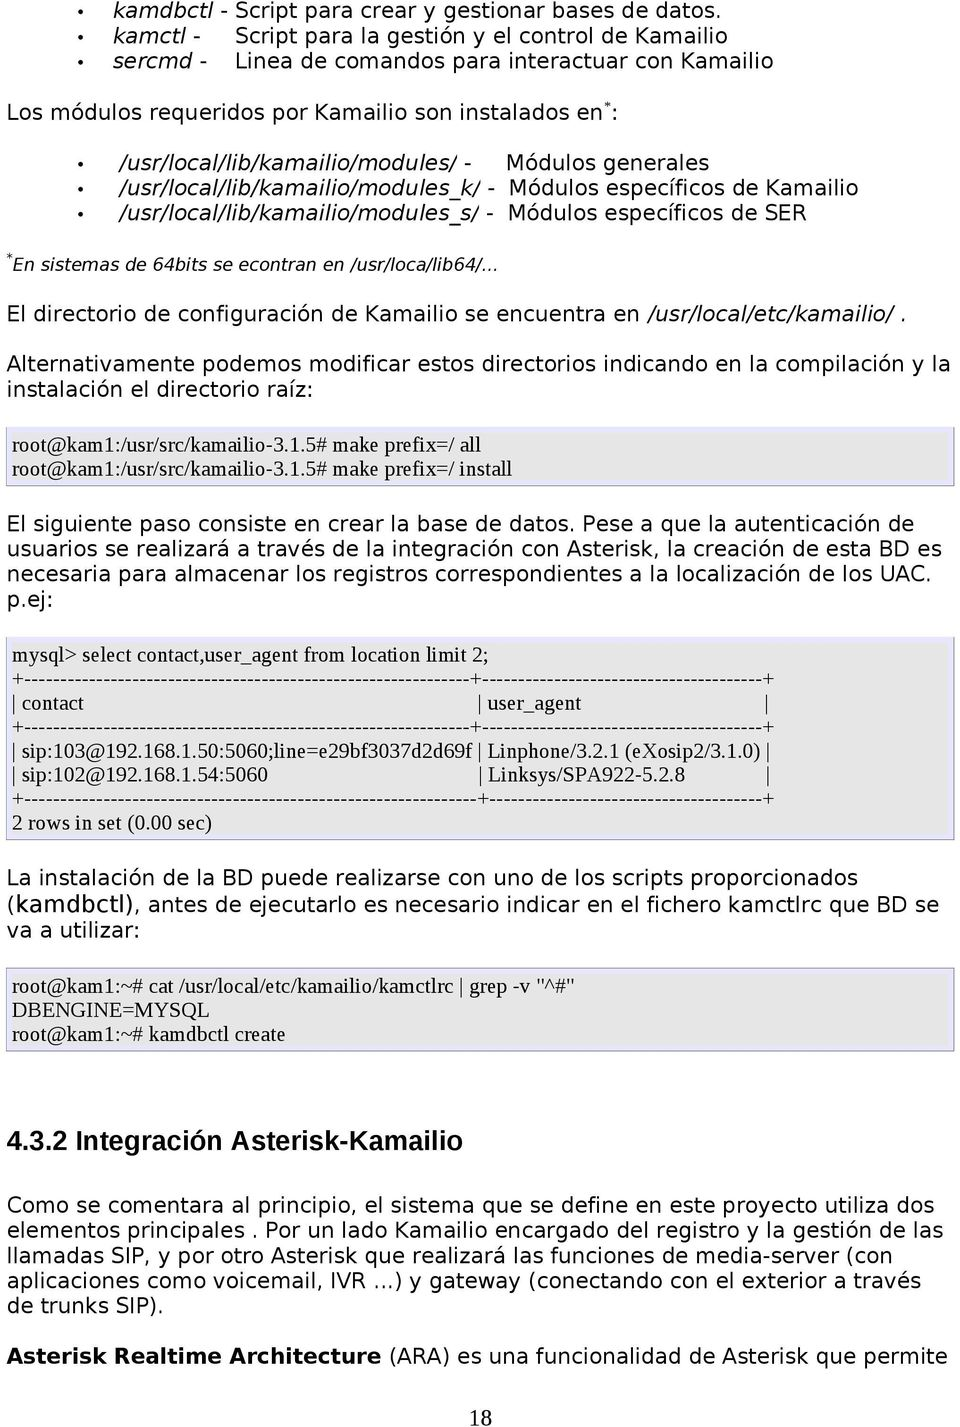 /usr/local/lib/kamailio/modules/ Módulos generales /usr/local/lib/kamailio/modules_k/ - Módulos específicos de Kamailio /usr/local/lib/kamailio/modules_s/ - Módulos específicos de SER * En sistemas